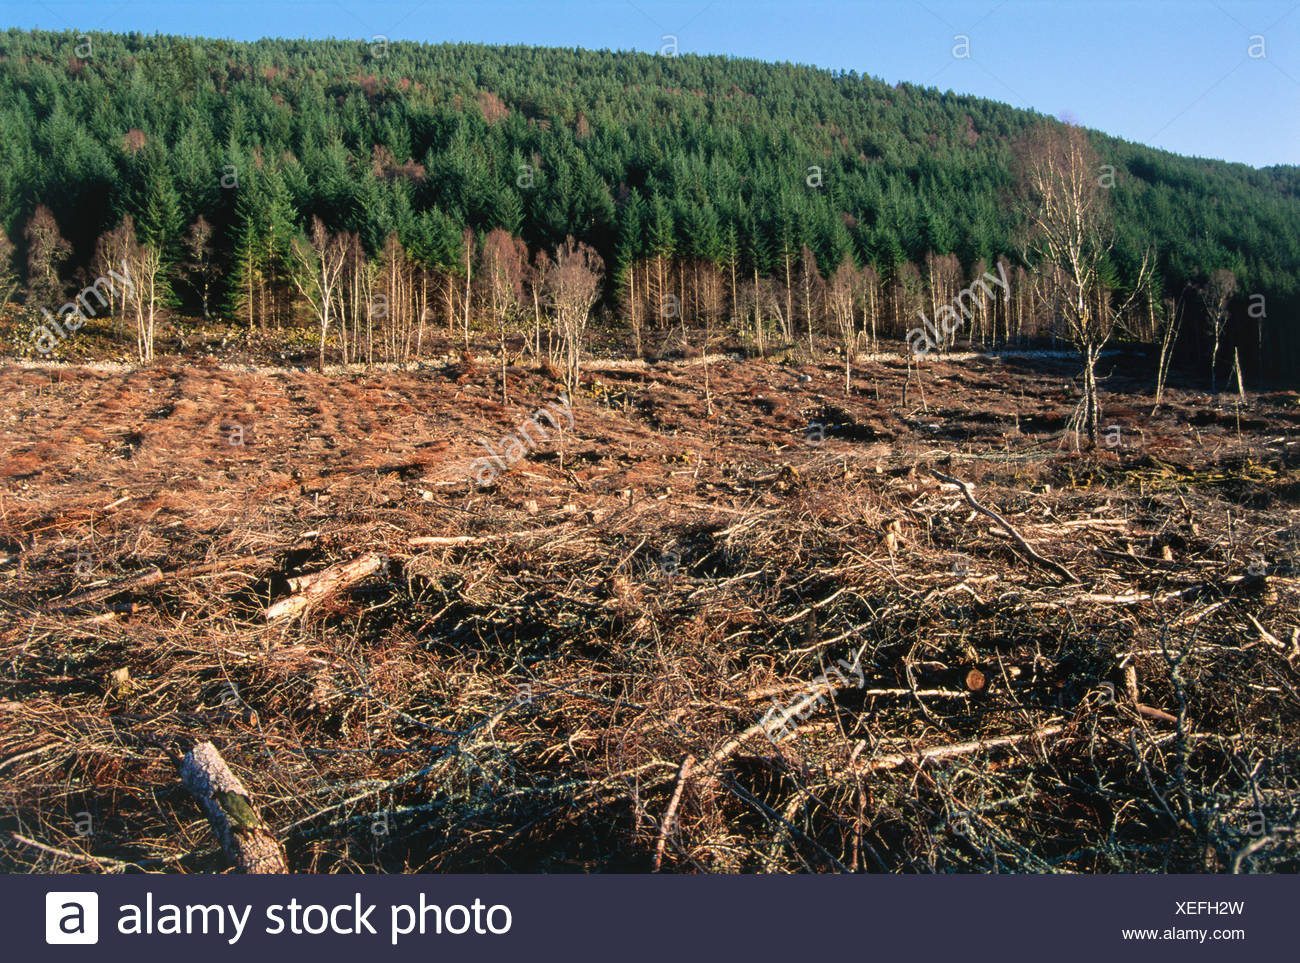 Harvesting Conifers - Stock Image